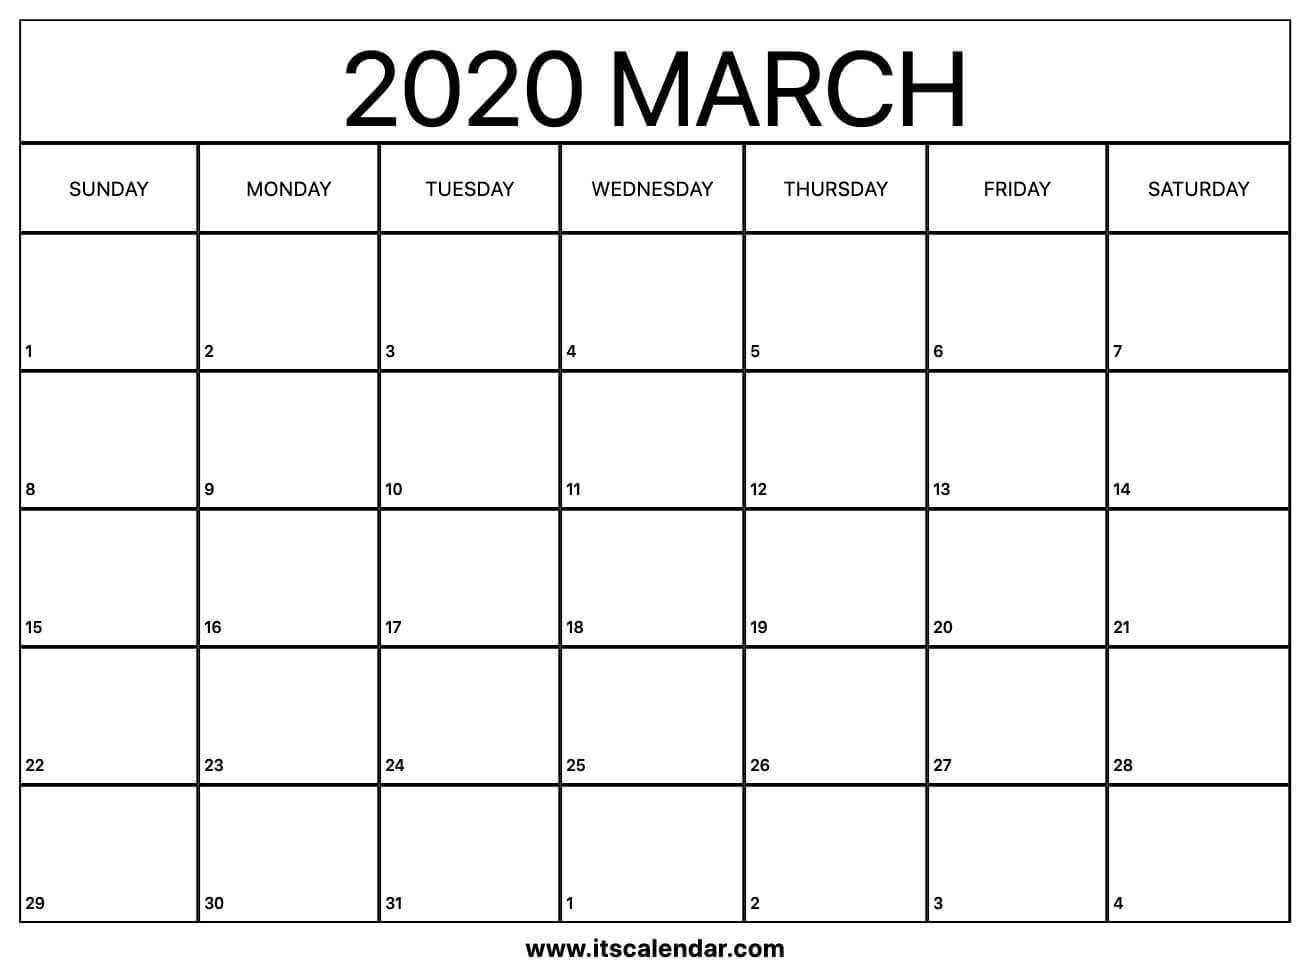 J Salmon 2020 Calendar | Calendar Printables Free Templates with regard to Calendar With March Filled In